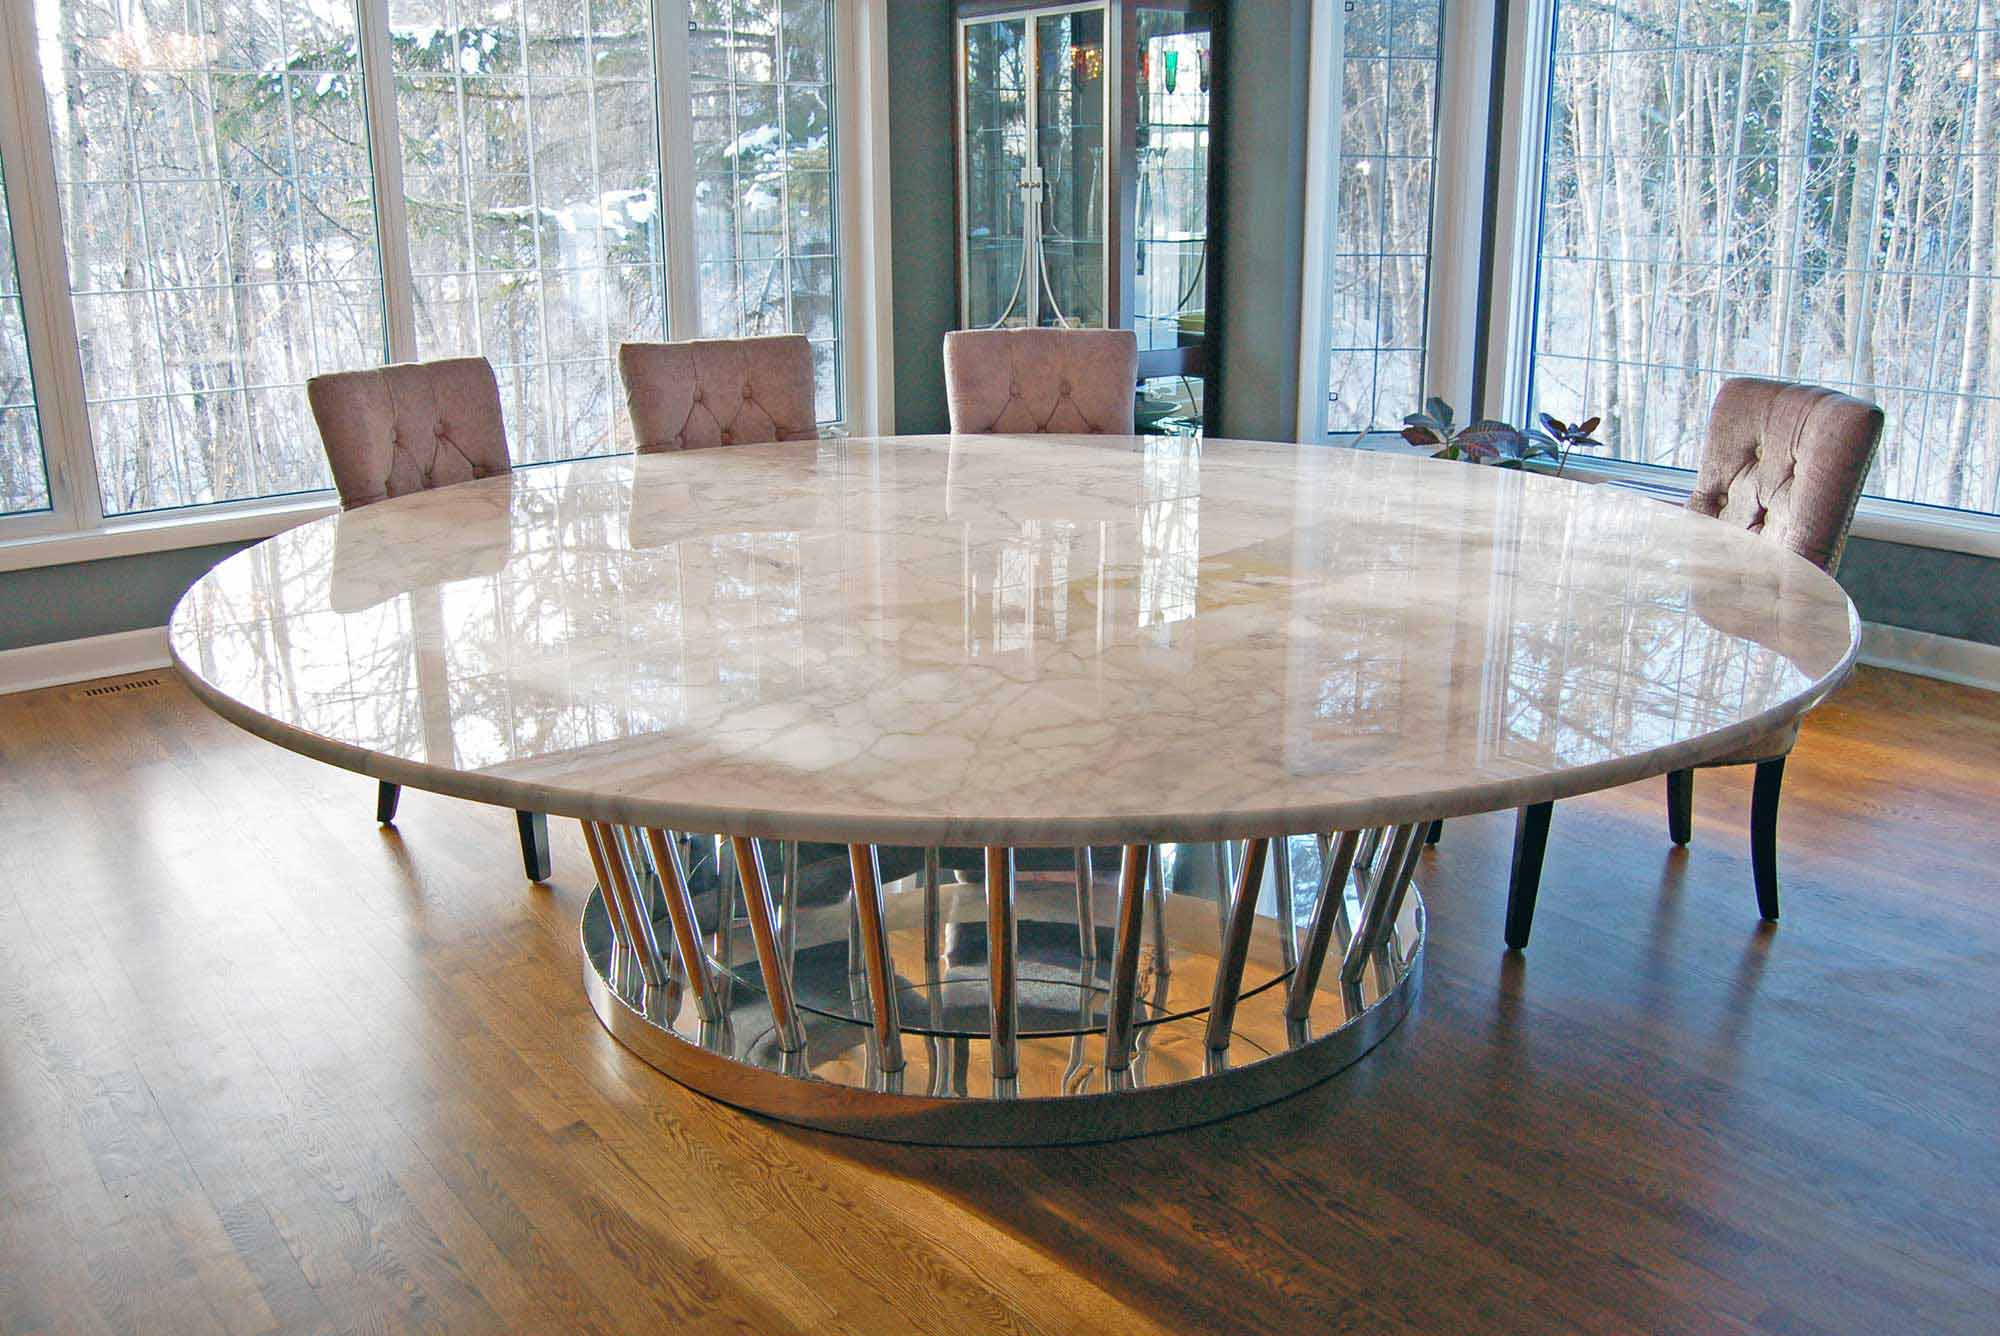 Dining Tables For 12 Persons Dining Table Danielle Tussman